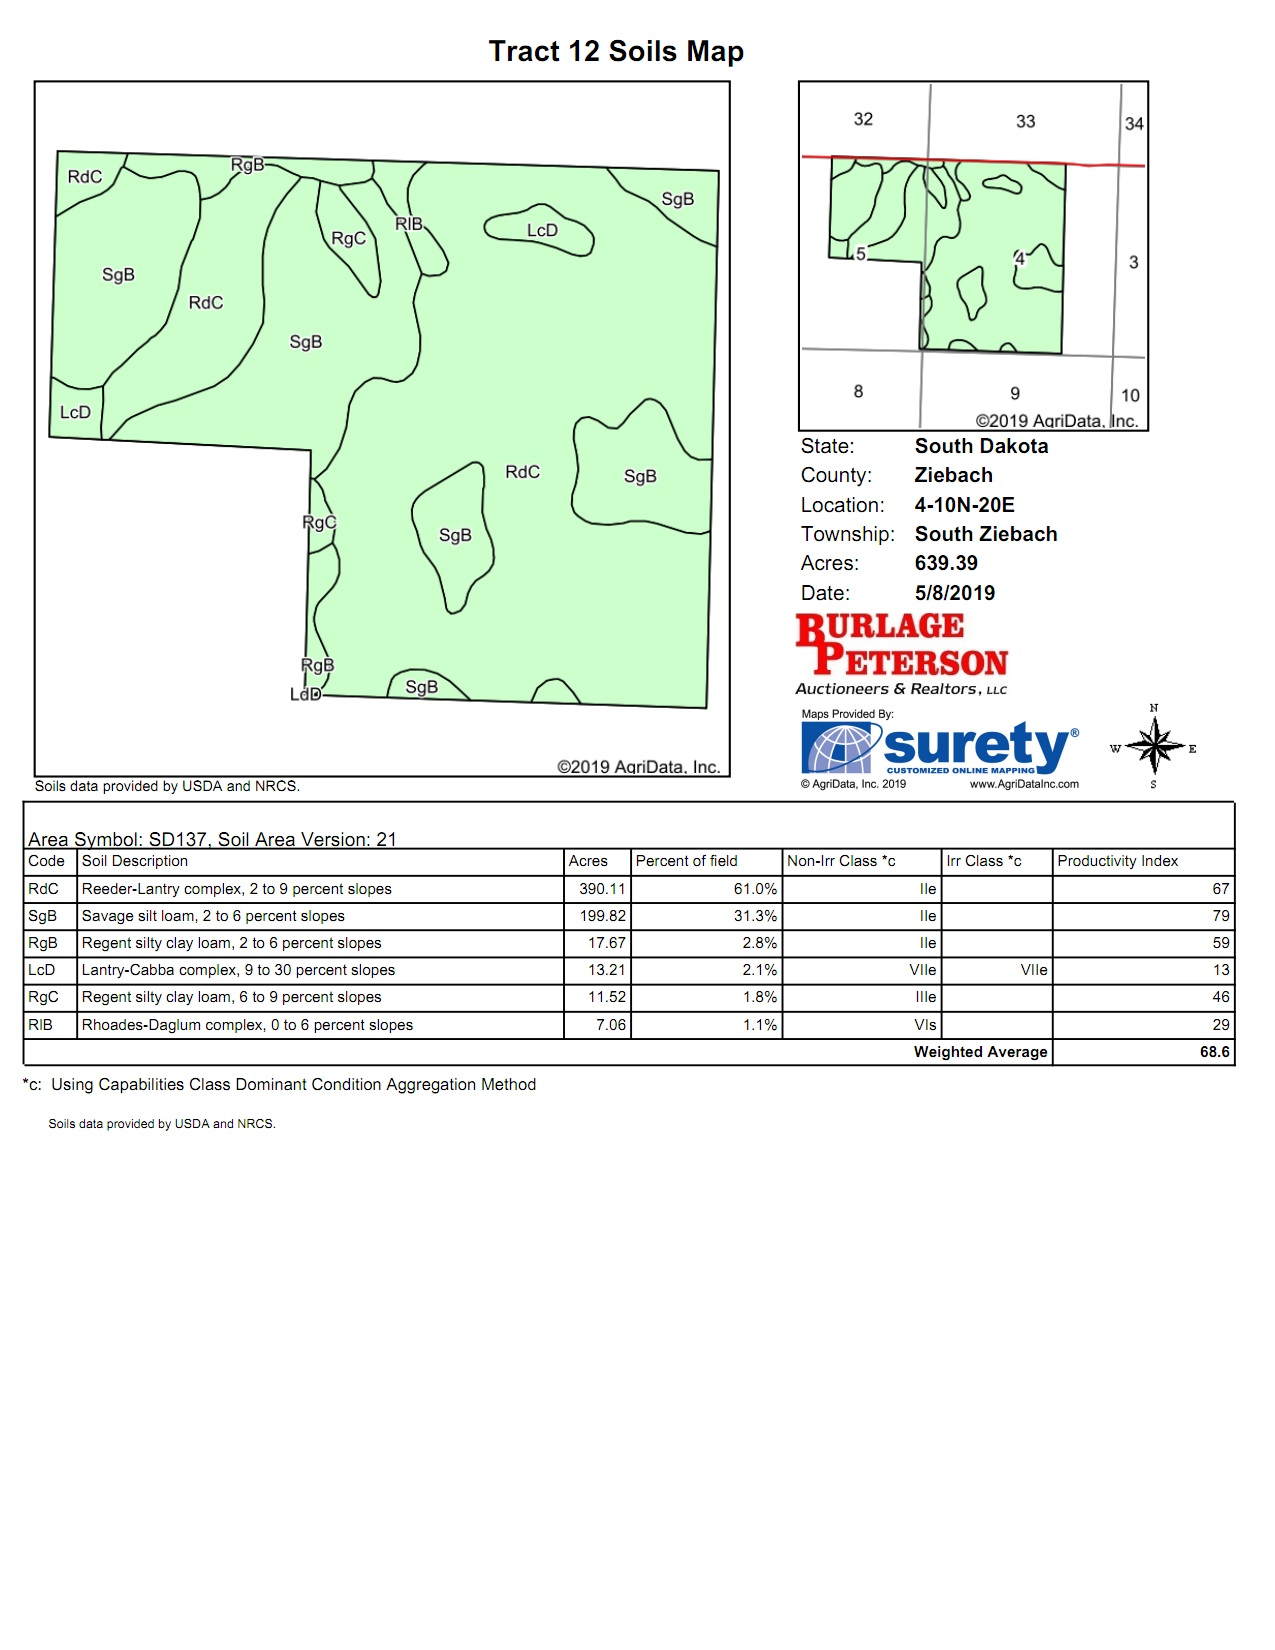 Tract 12 Soil Map